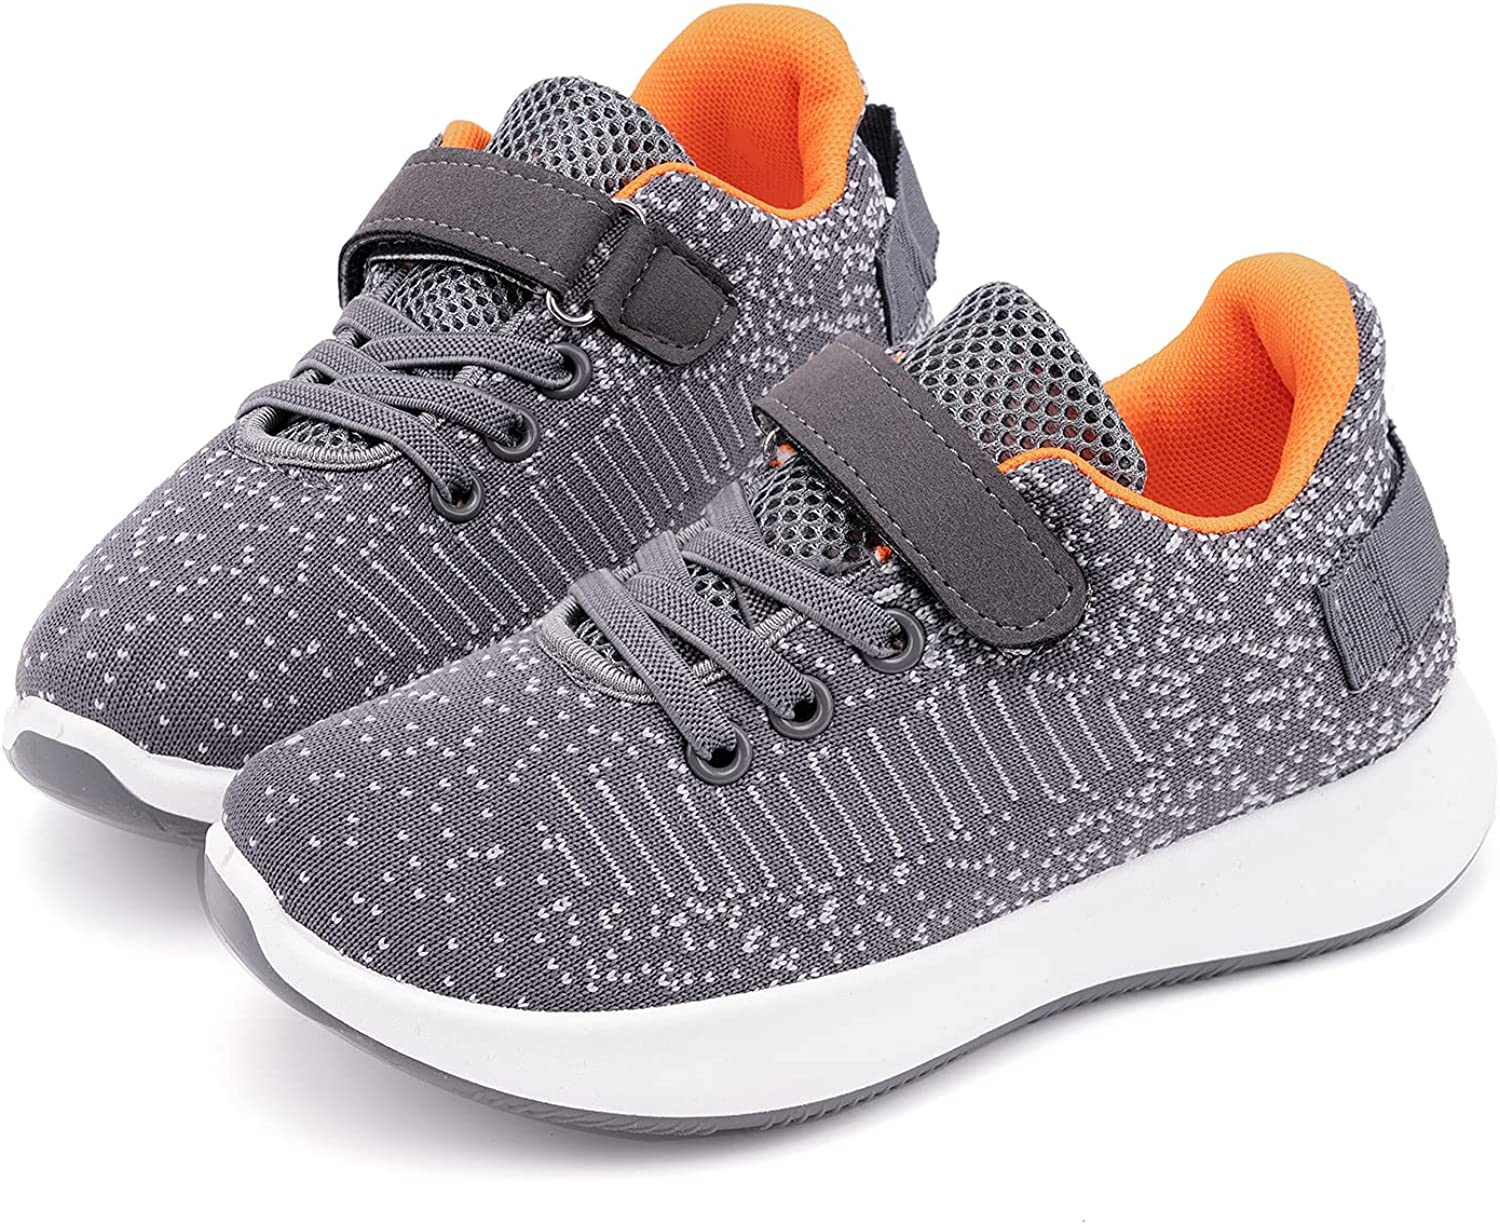 Toandon Toddler Kids Knit Max 56% OFF Breathable for Special Campaign Athletic Sport Sneakers